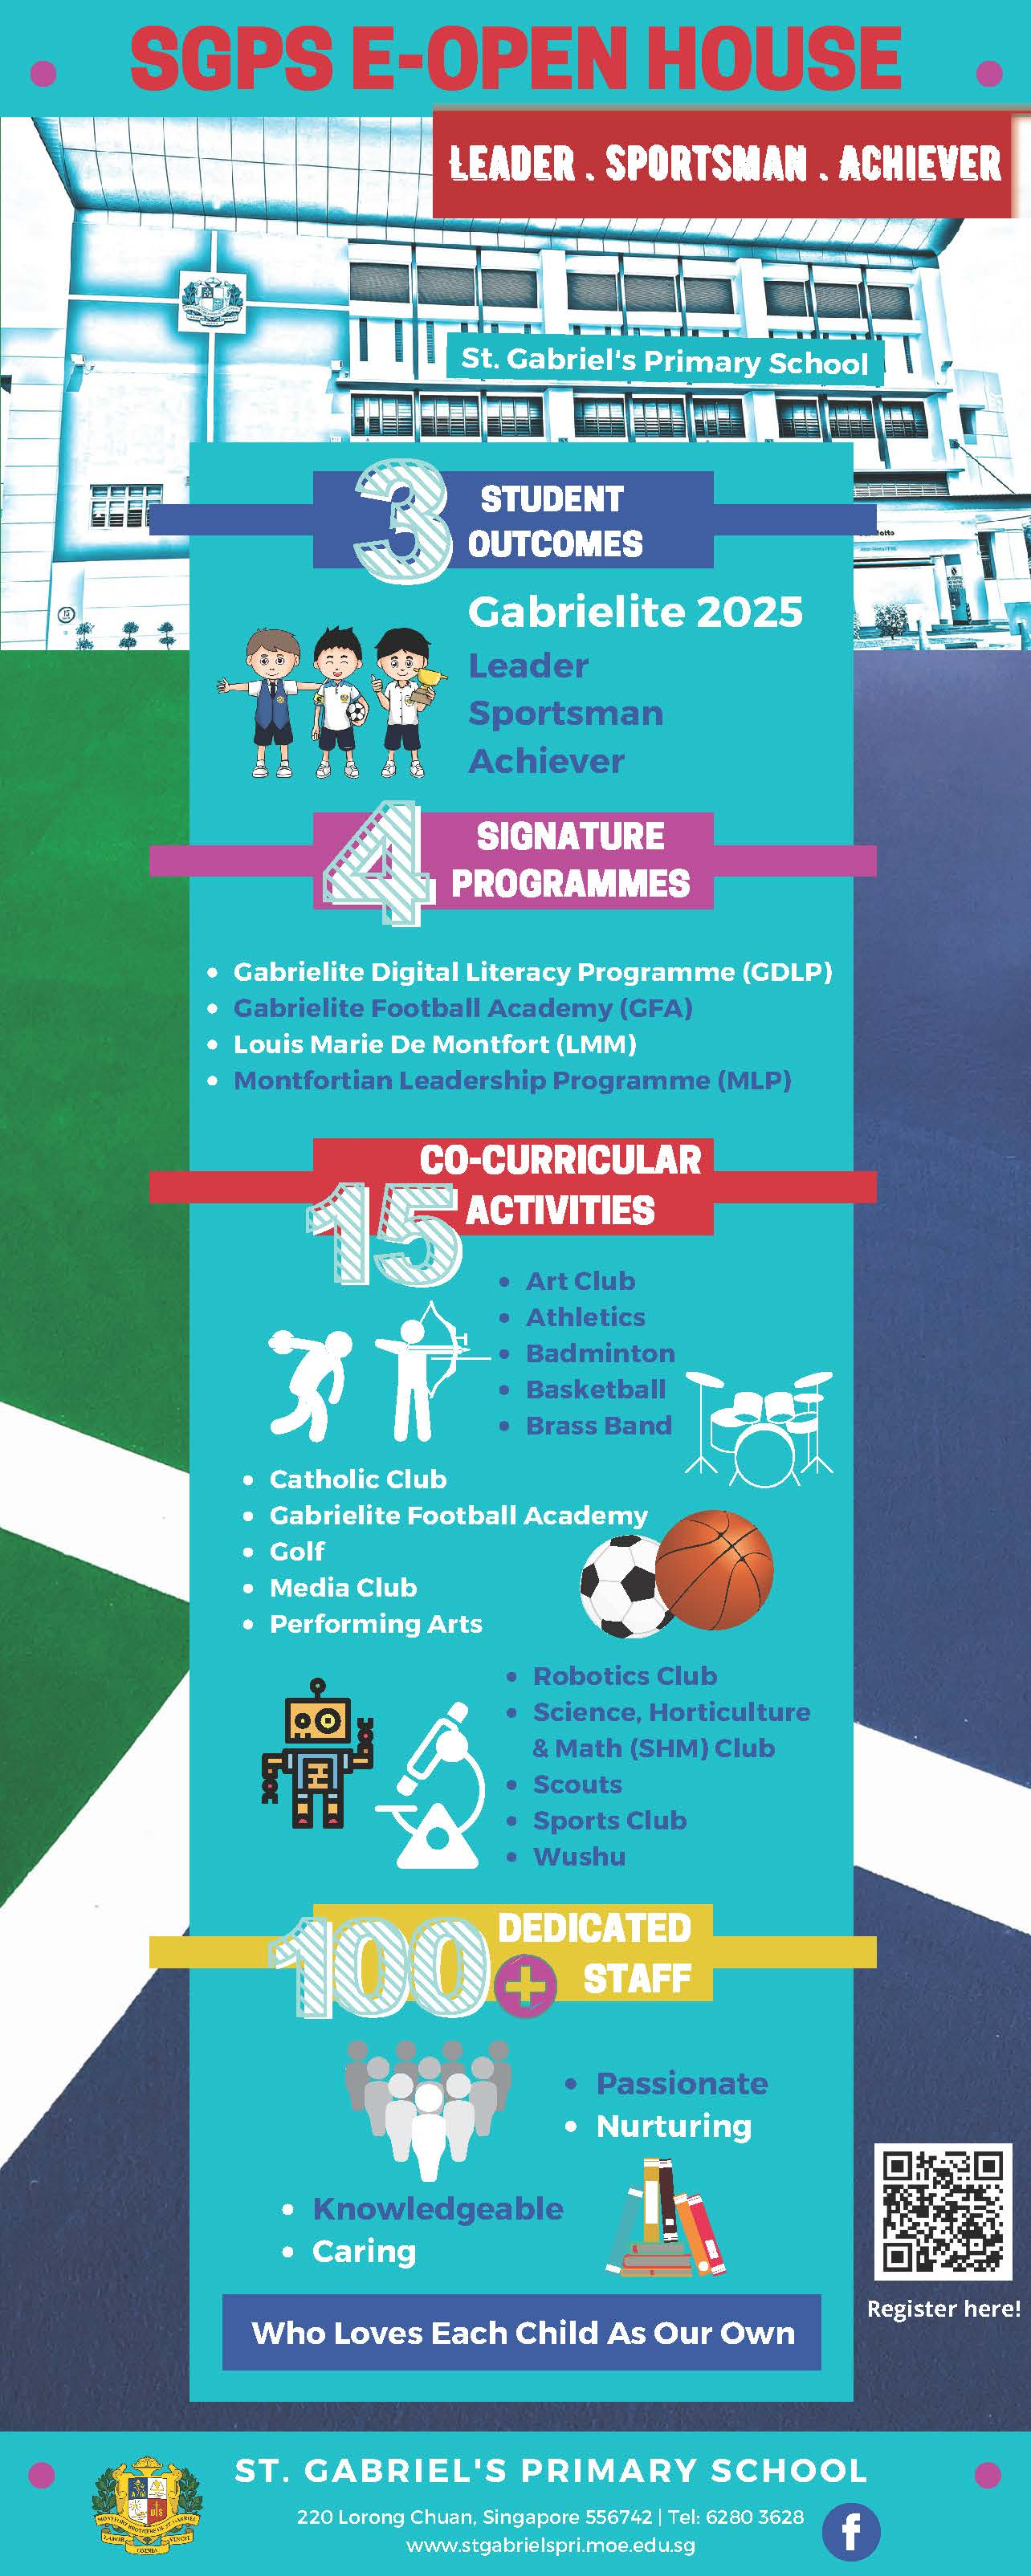 2021 SGPS E-Open House Infographic_Page_1.jpg